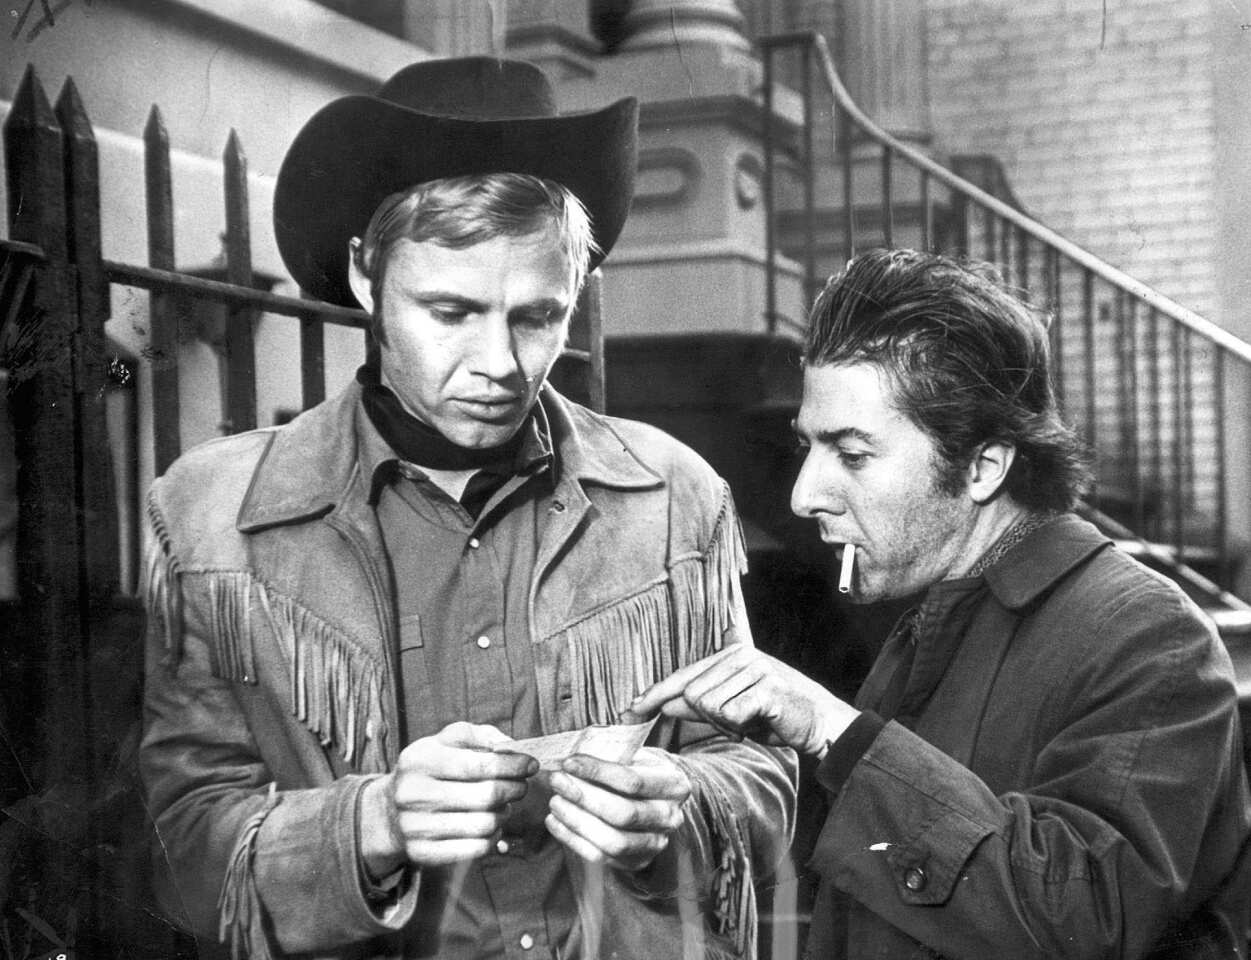 "Box office: $44,785,053 The only X-rated film to win an Academy Award for best picture, John Schlesinger's ""Midnight Cowboy"" (based on James Leo Herlihy's novel) starred then-newcomer Jon Voight, left, as a prostitute in New York City and Dustin Hoffman as his friend, an ailing thief. ""We felt the X rating was the correct rating for it,"" the film's producer Jerome Hellman told the L.A. Times in 1992. ""X in those days did not mean pornography."" After ""Midnight Cowboy"" won three Oscars (and was nominated for four more), it was re-rated R. ""The great thing about 'Midnight Cowboy' is that we didn't question what we were doing,"" Schlesinger told the Philadelphia Inquirer when the film was re-released in 1994. ""We just did it with a total feeling of confidence and freedom. We didn't think, 'Oh, we're being very groundbreaking on this.' I just made the film the way I wanted to."" MORE: 'Midnight Cowboy' and the very dark horse its makers rode in on 